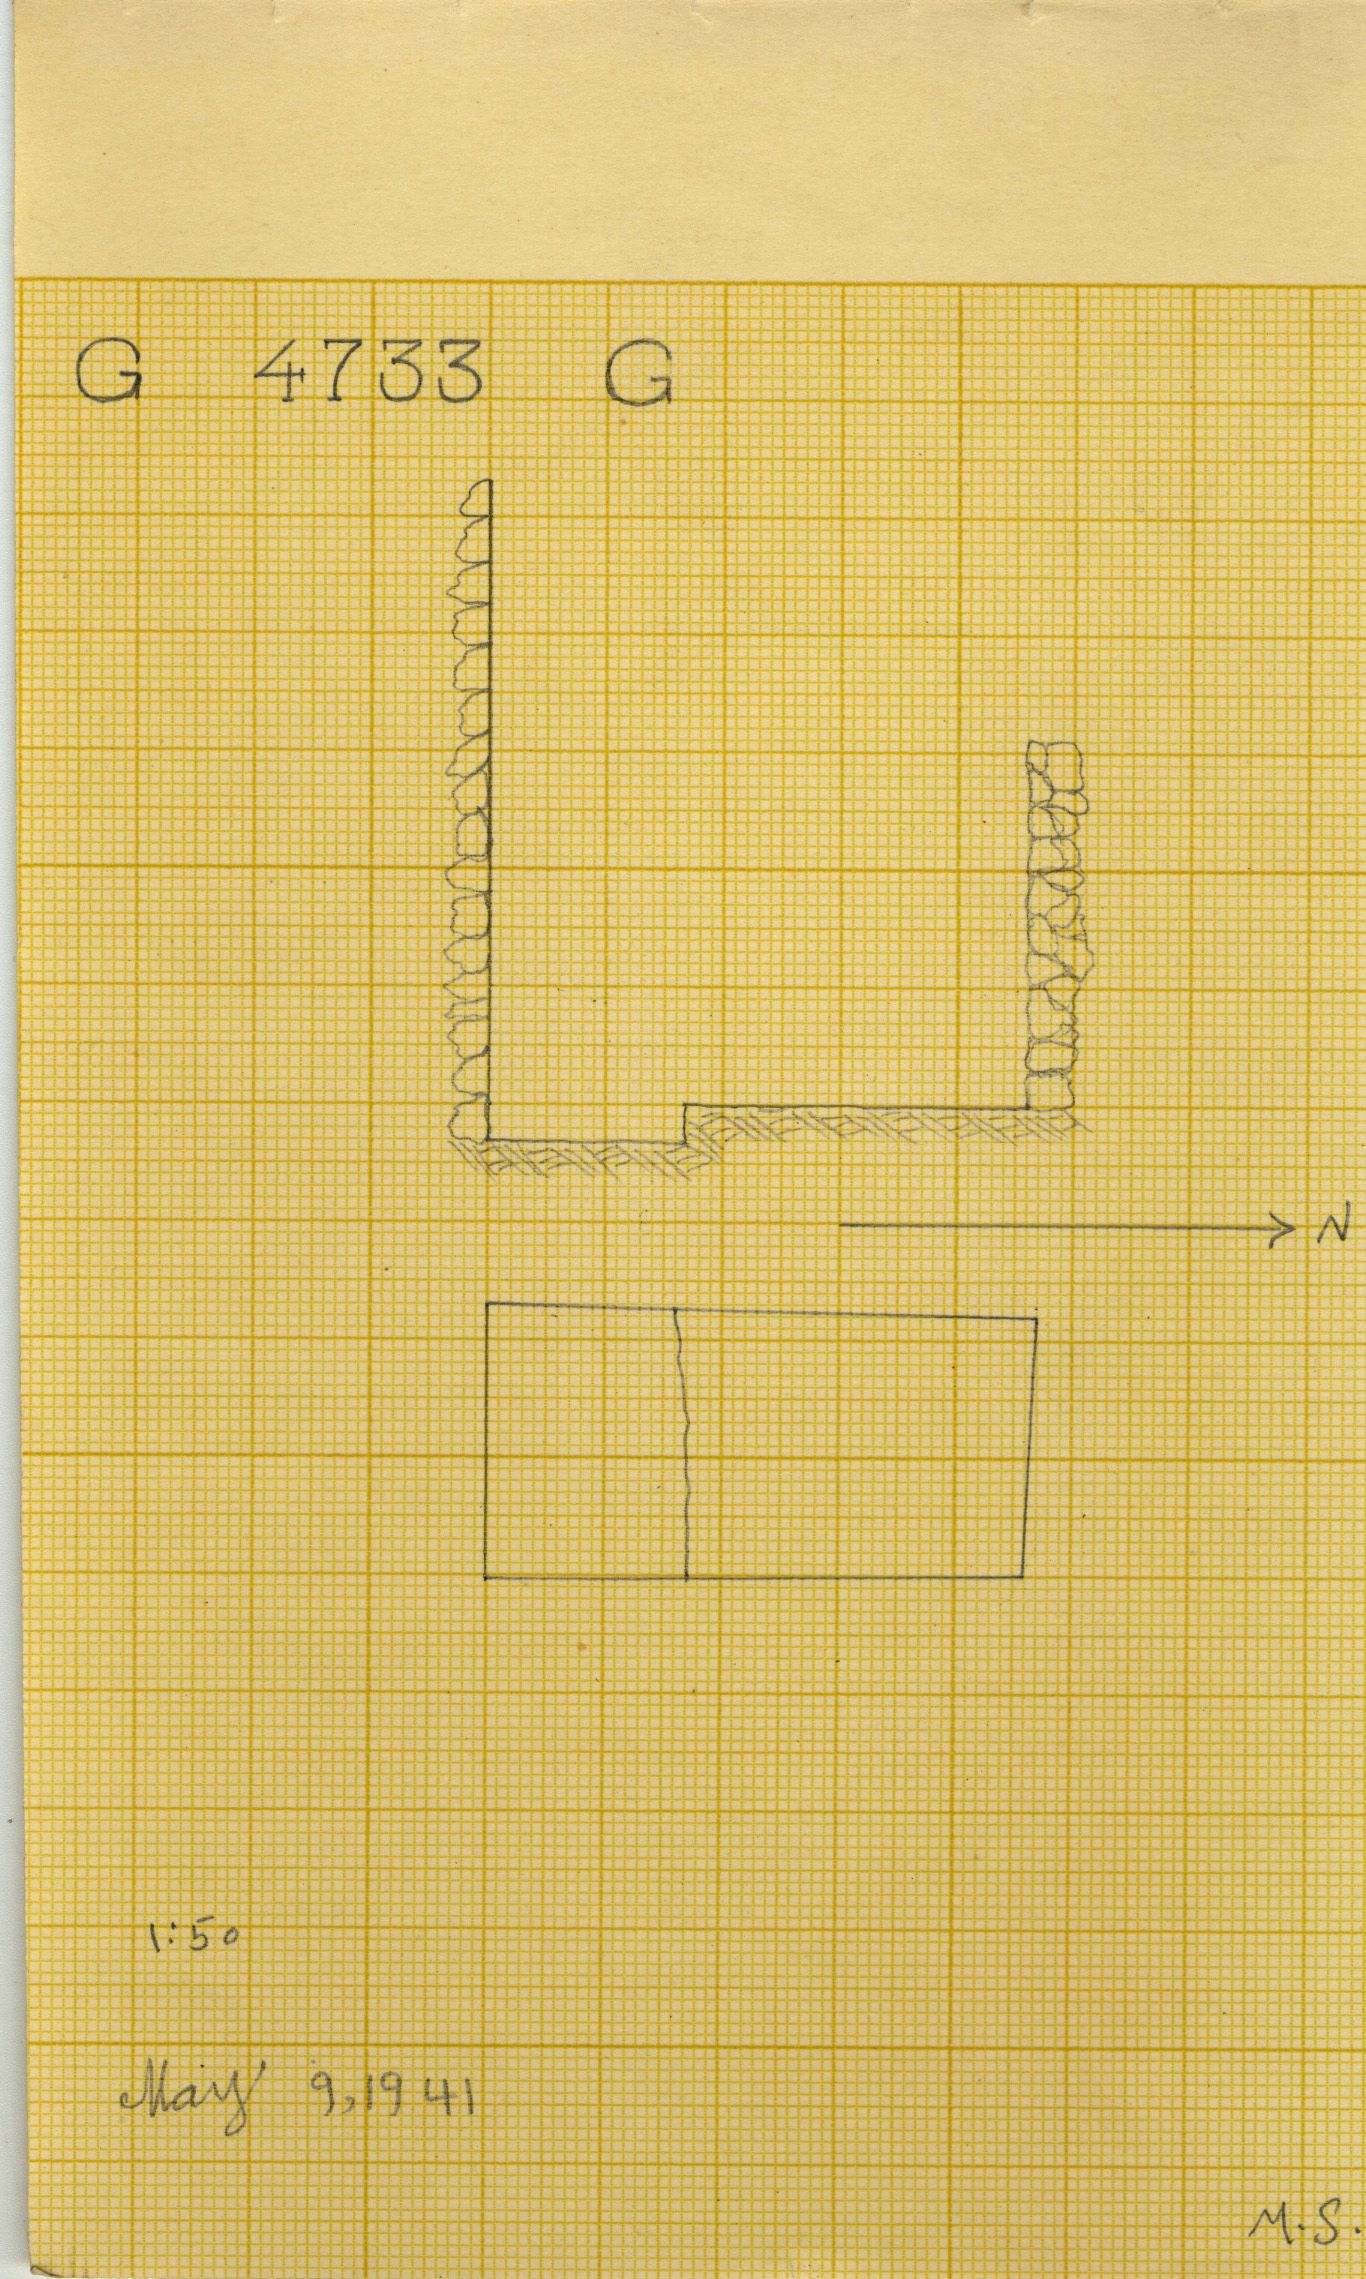 Maps and plans: G 4733, Shaft G